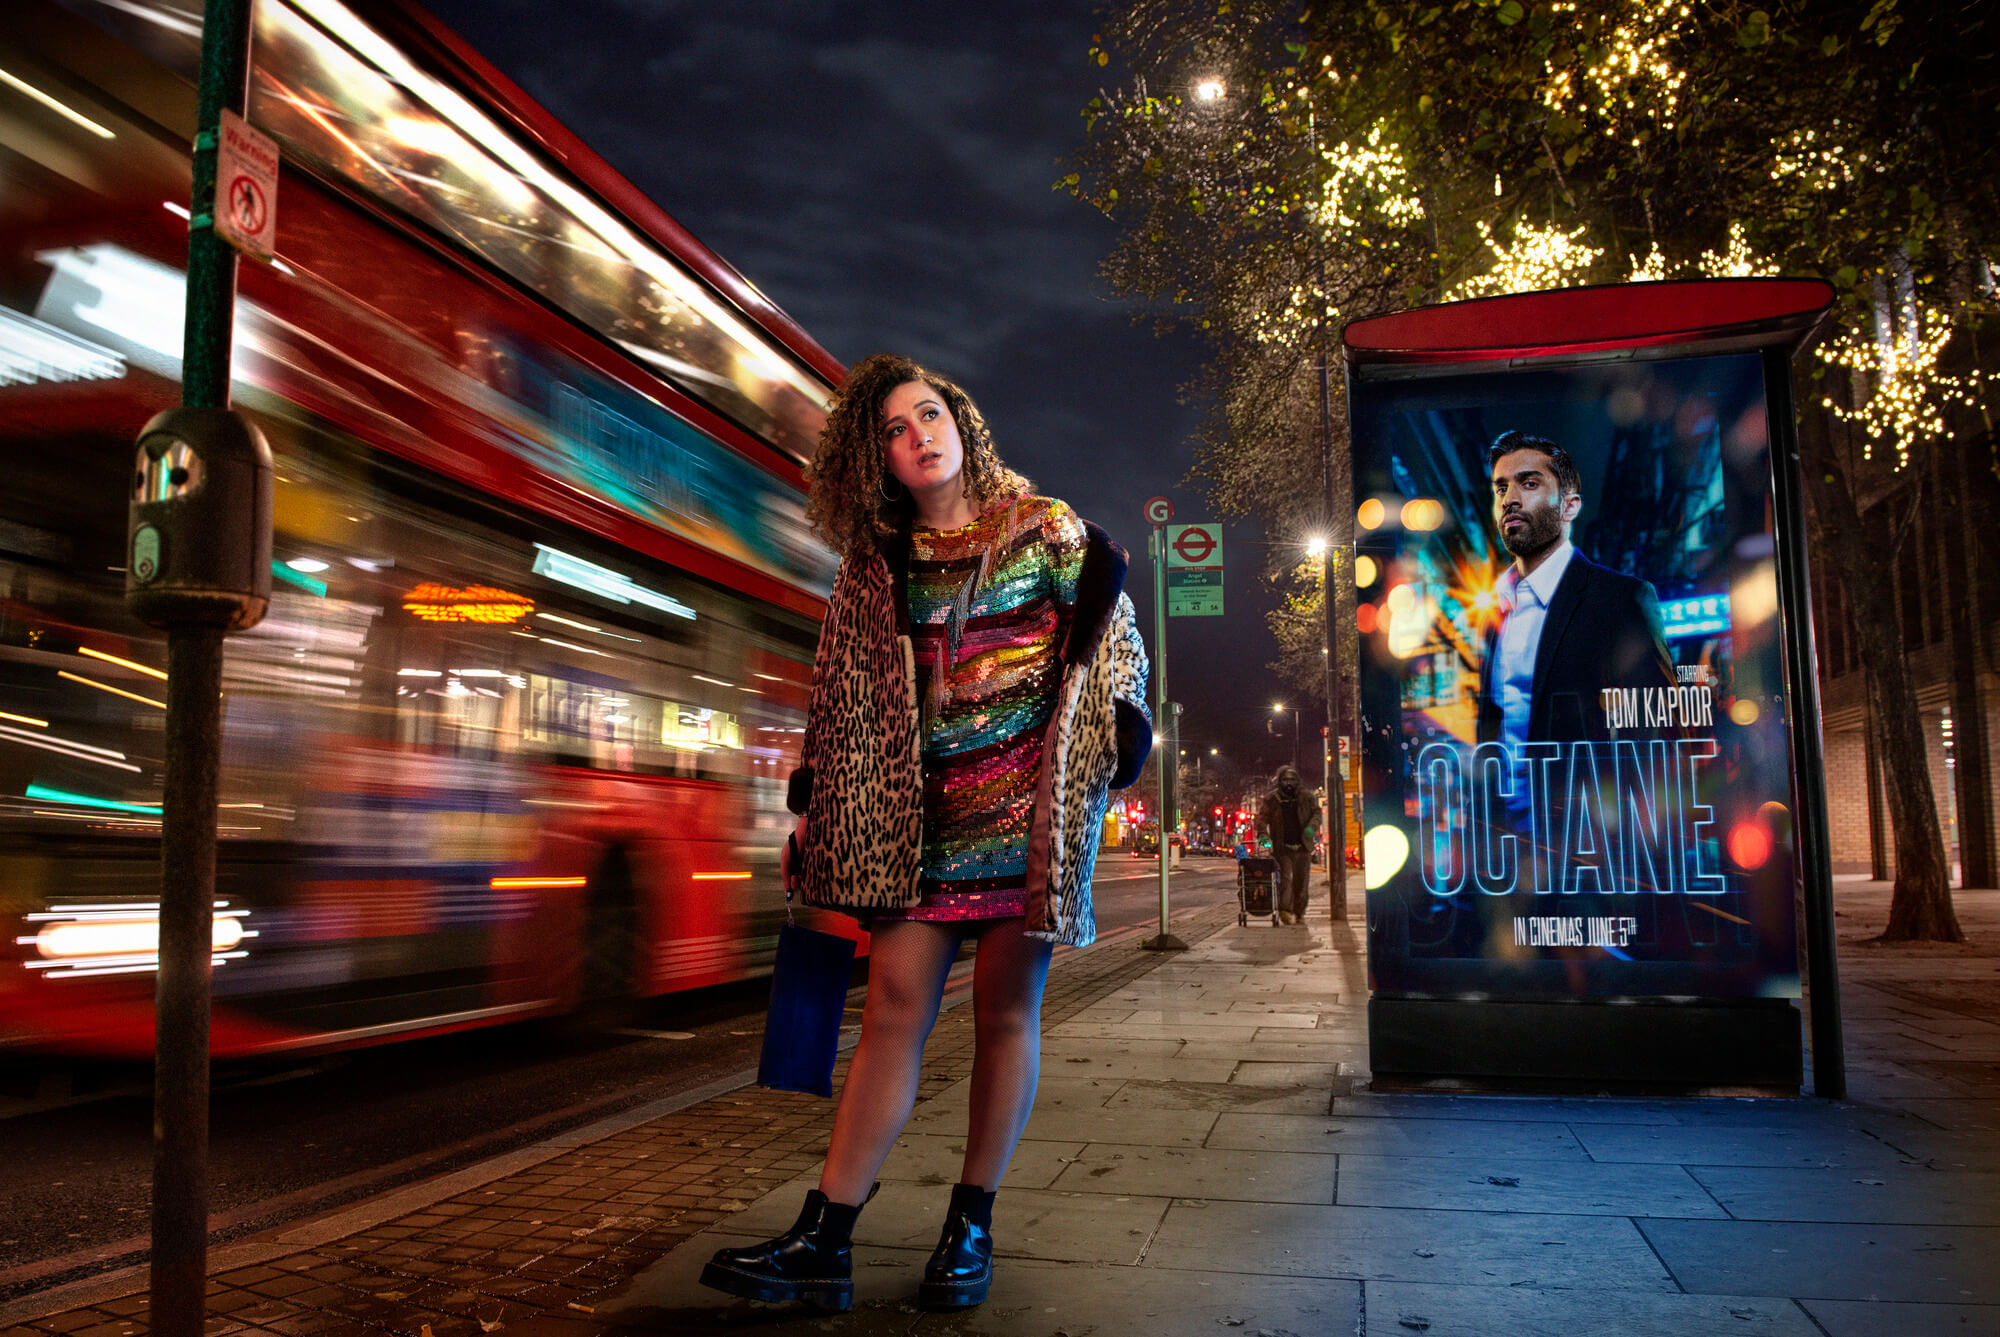 Rose Matafeo in sparkly dress at night with bus and film poster